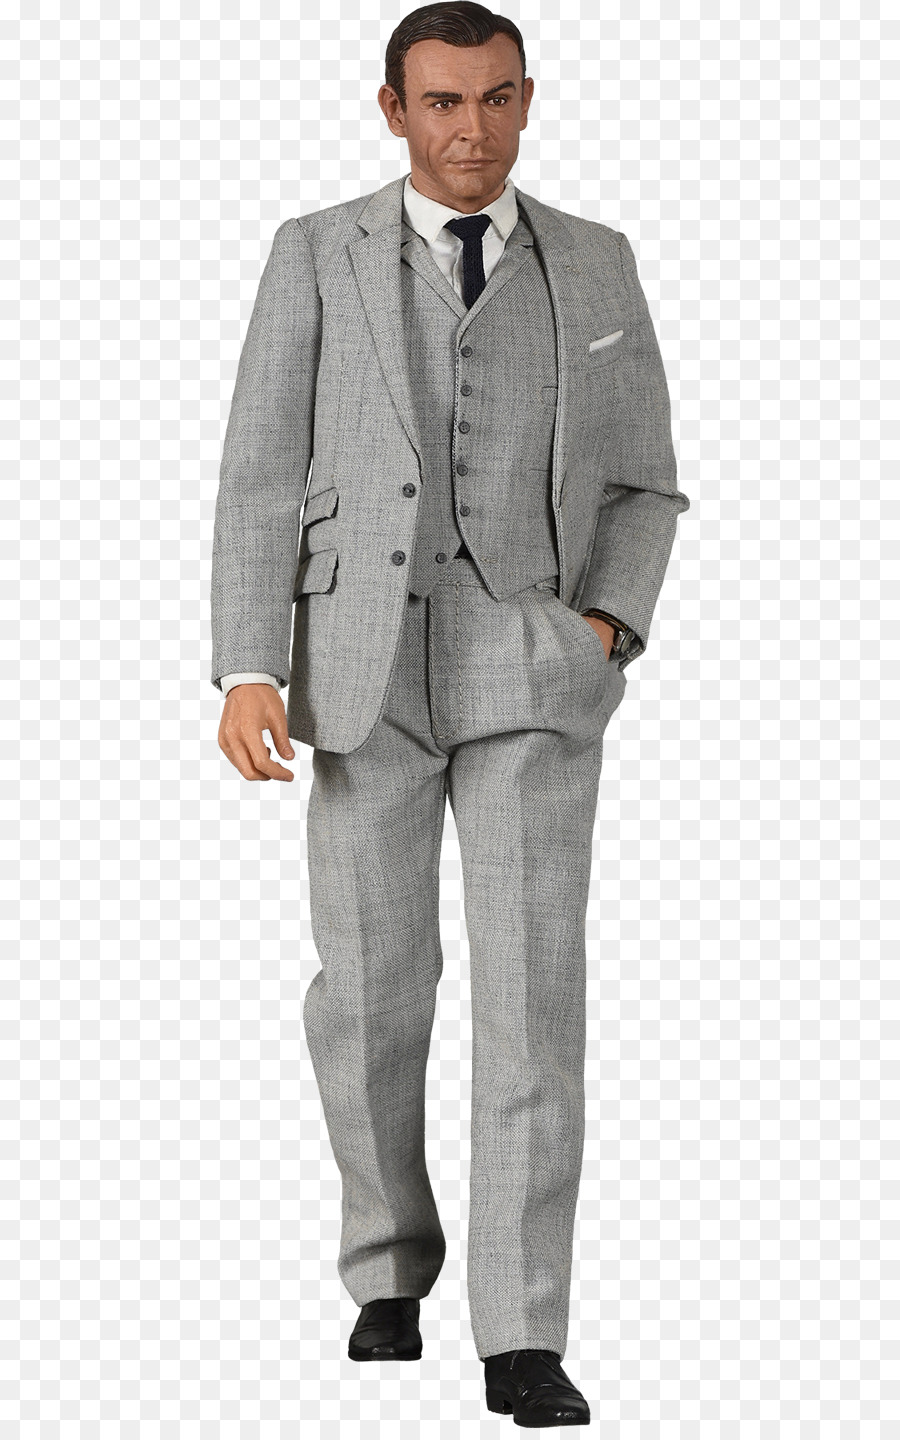 Sean Connery Standing png download.